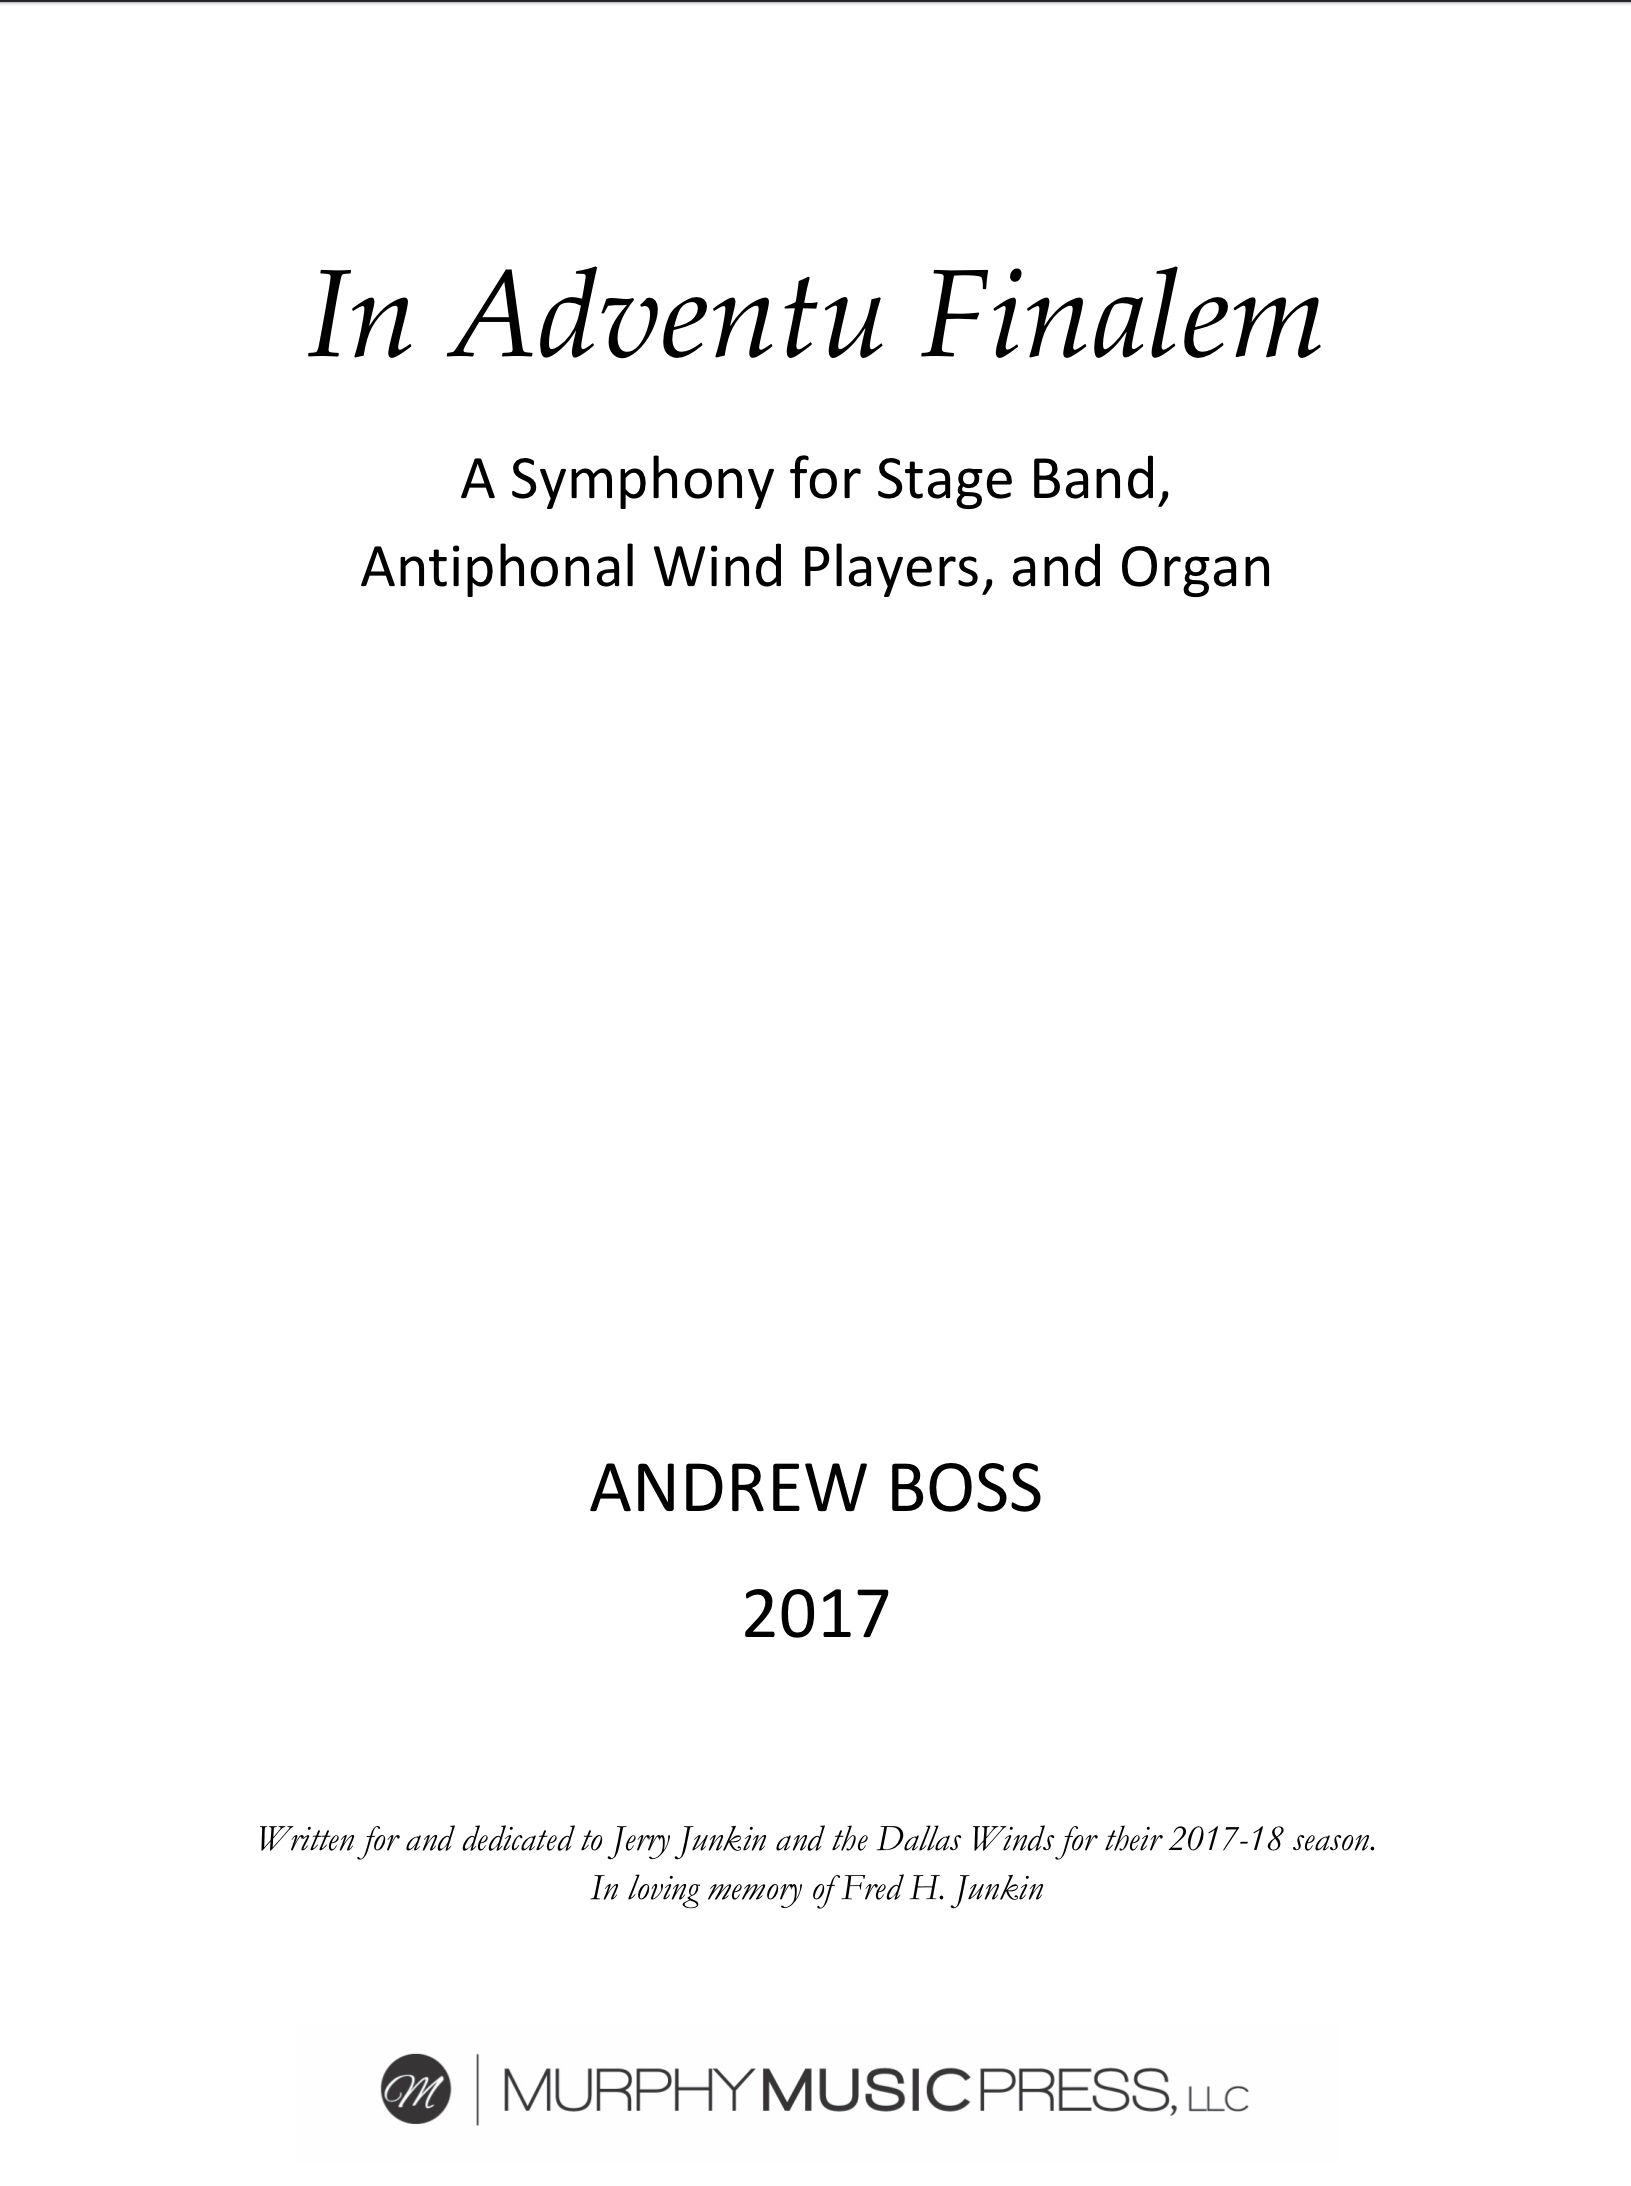 In Adventu Finalem (Study Score Only) by Andrew Boss